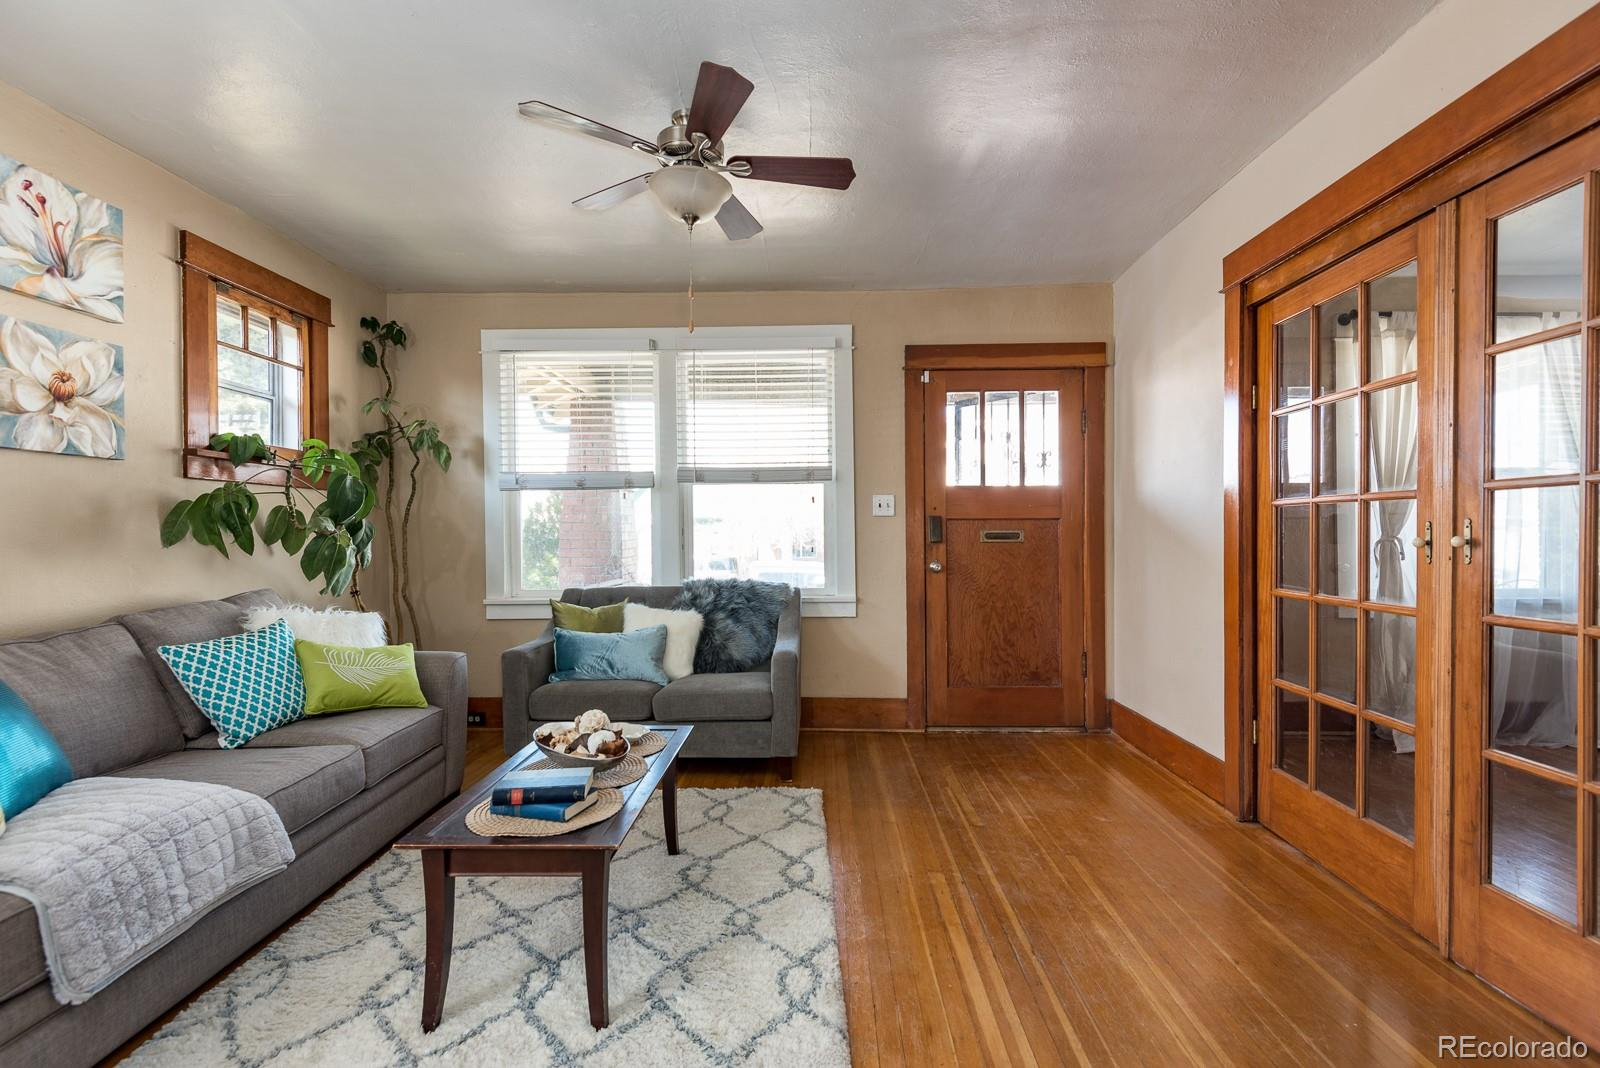 MLS# 8413392 - 8 - 256 Galapago Street, Denver, CO 80223